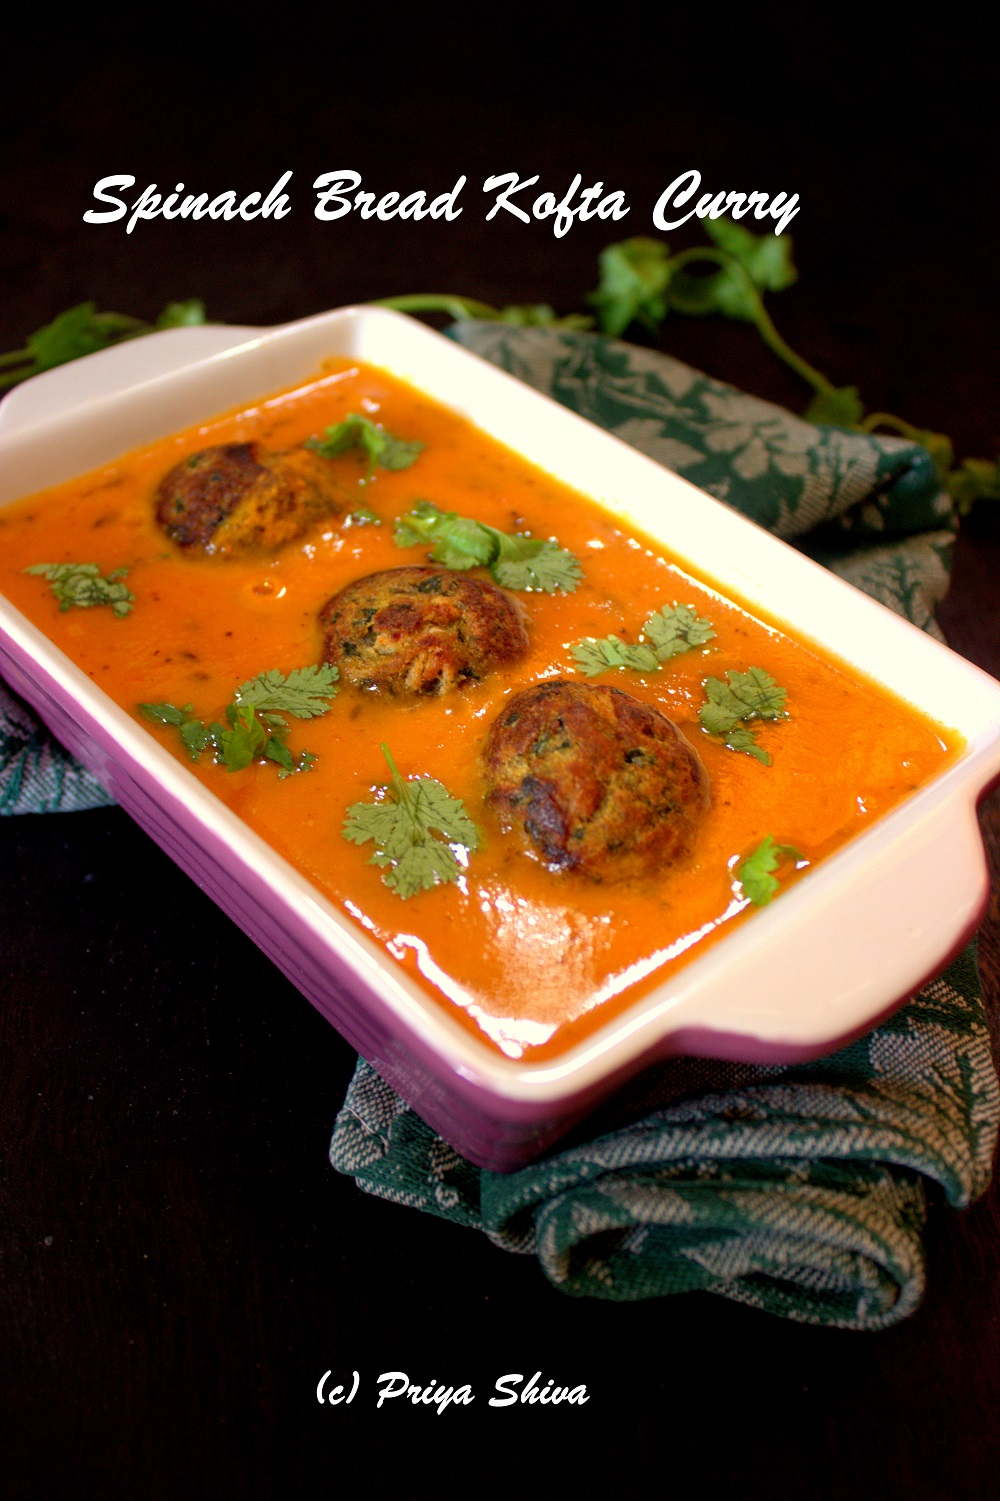 Spinach Bread Kofta Curry Recipe